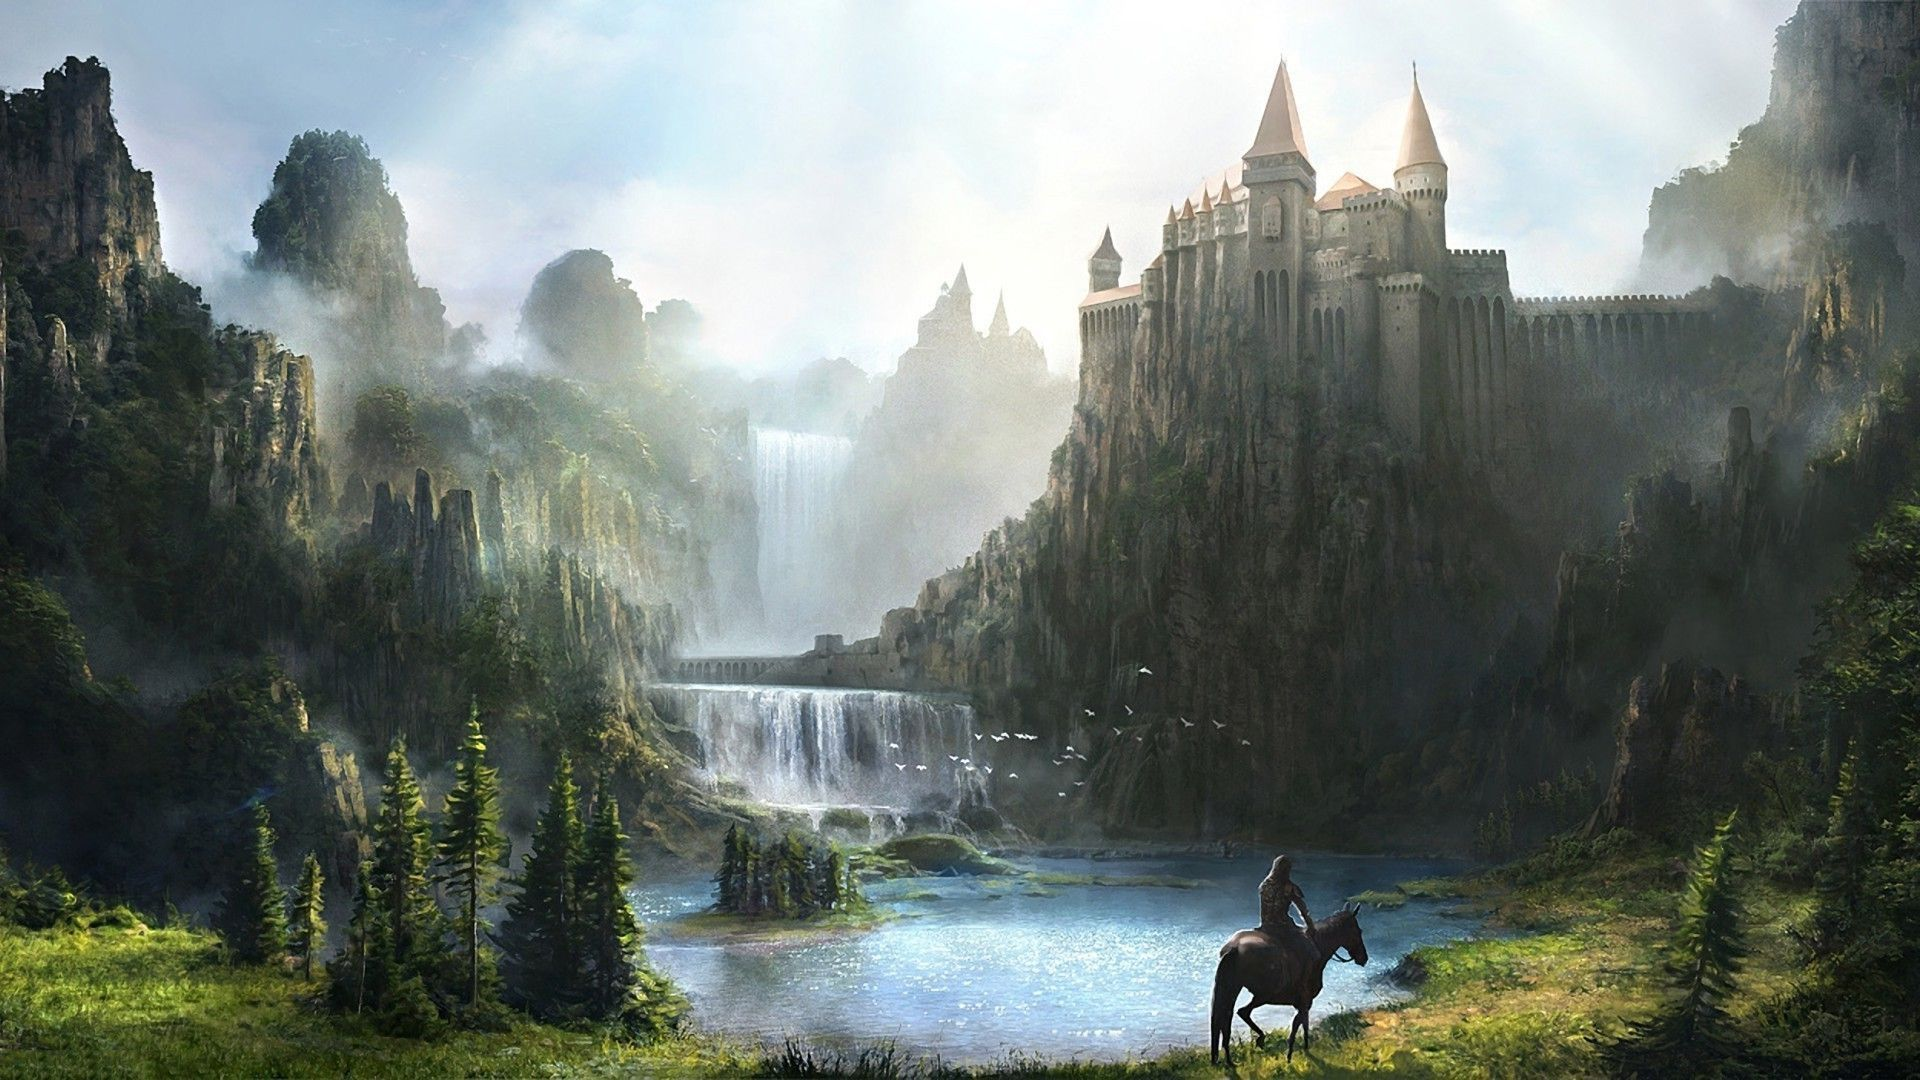 Fantasy Waterfall Castle Hd Wallpapers Man Riding Horse